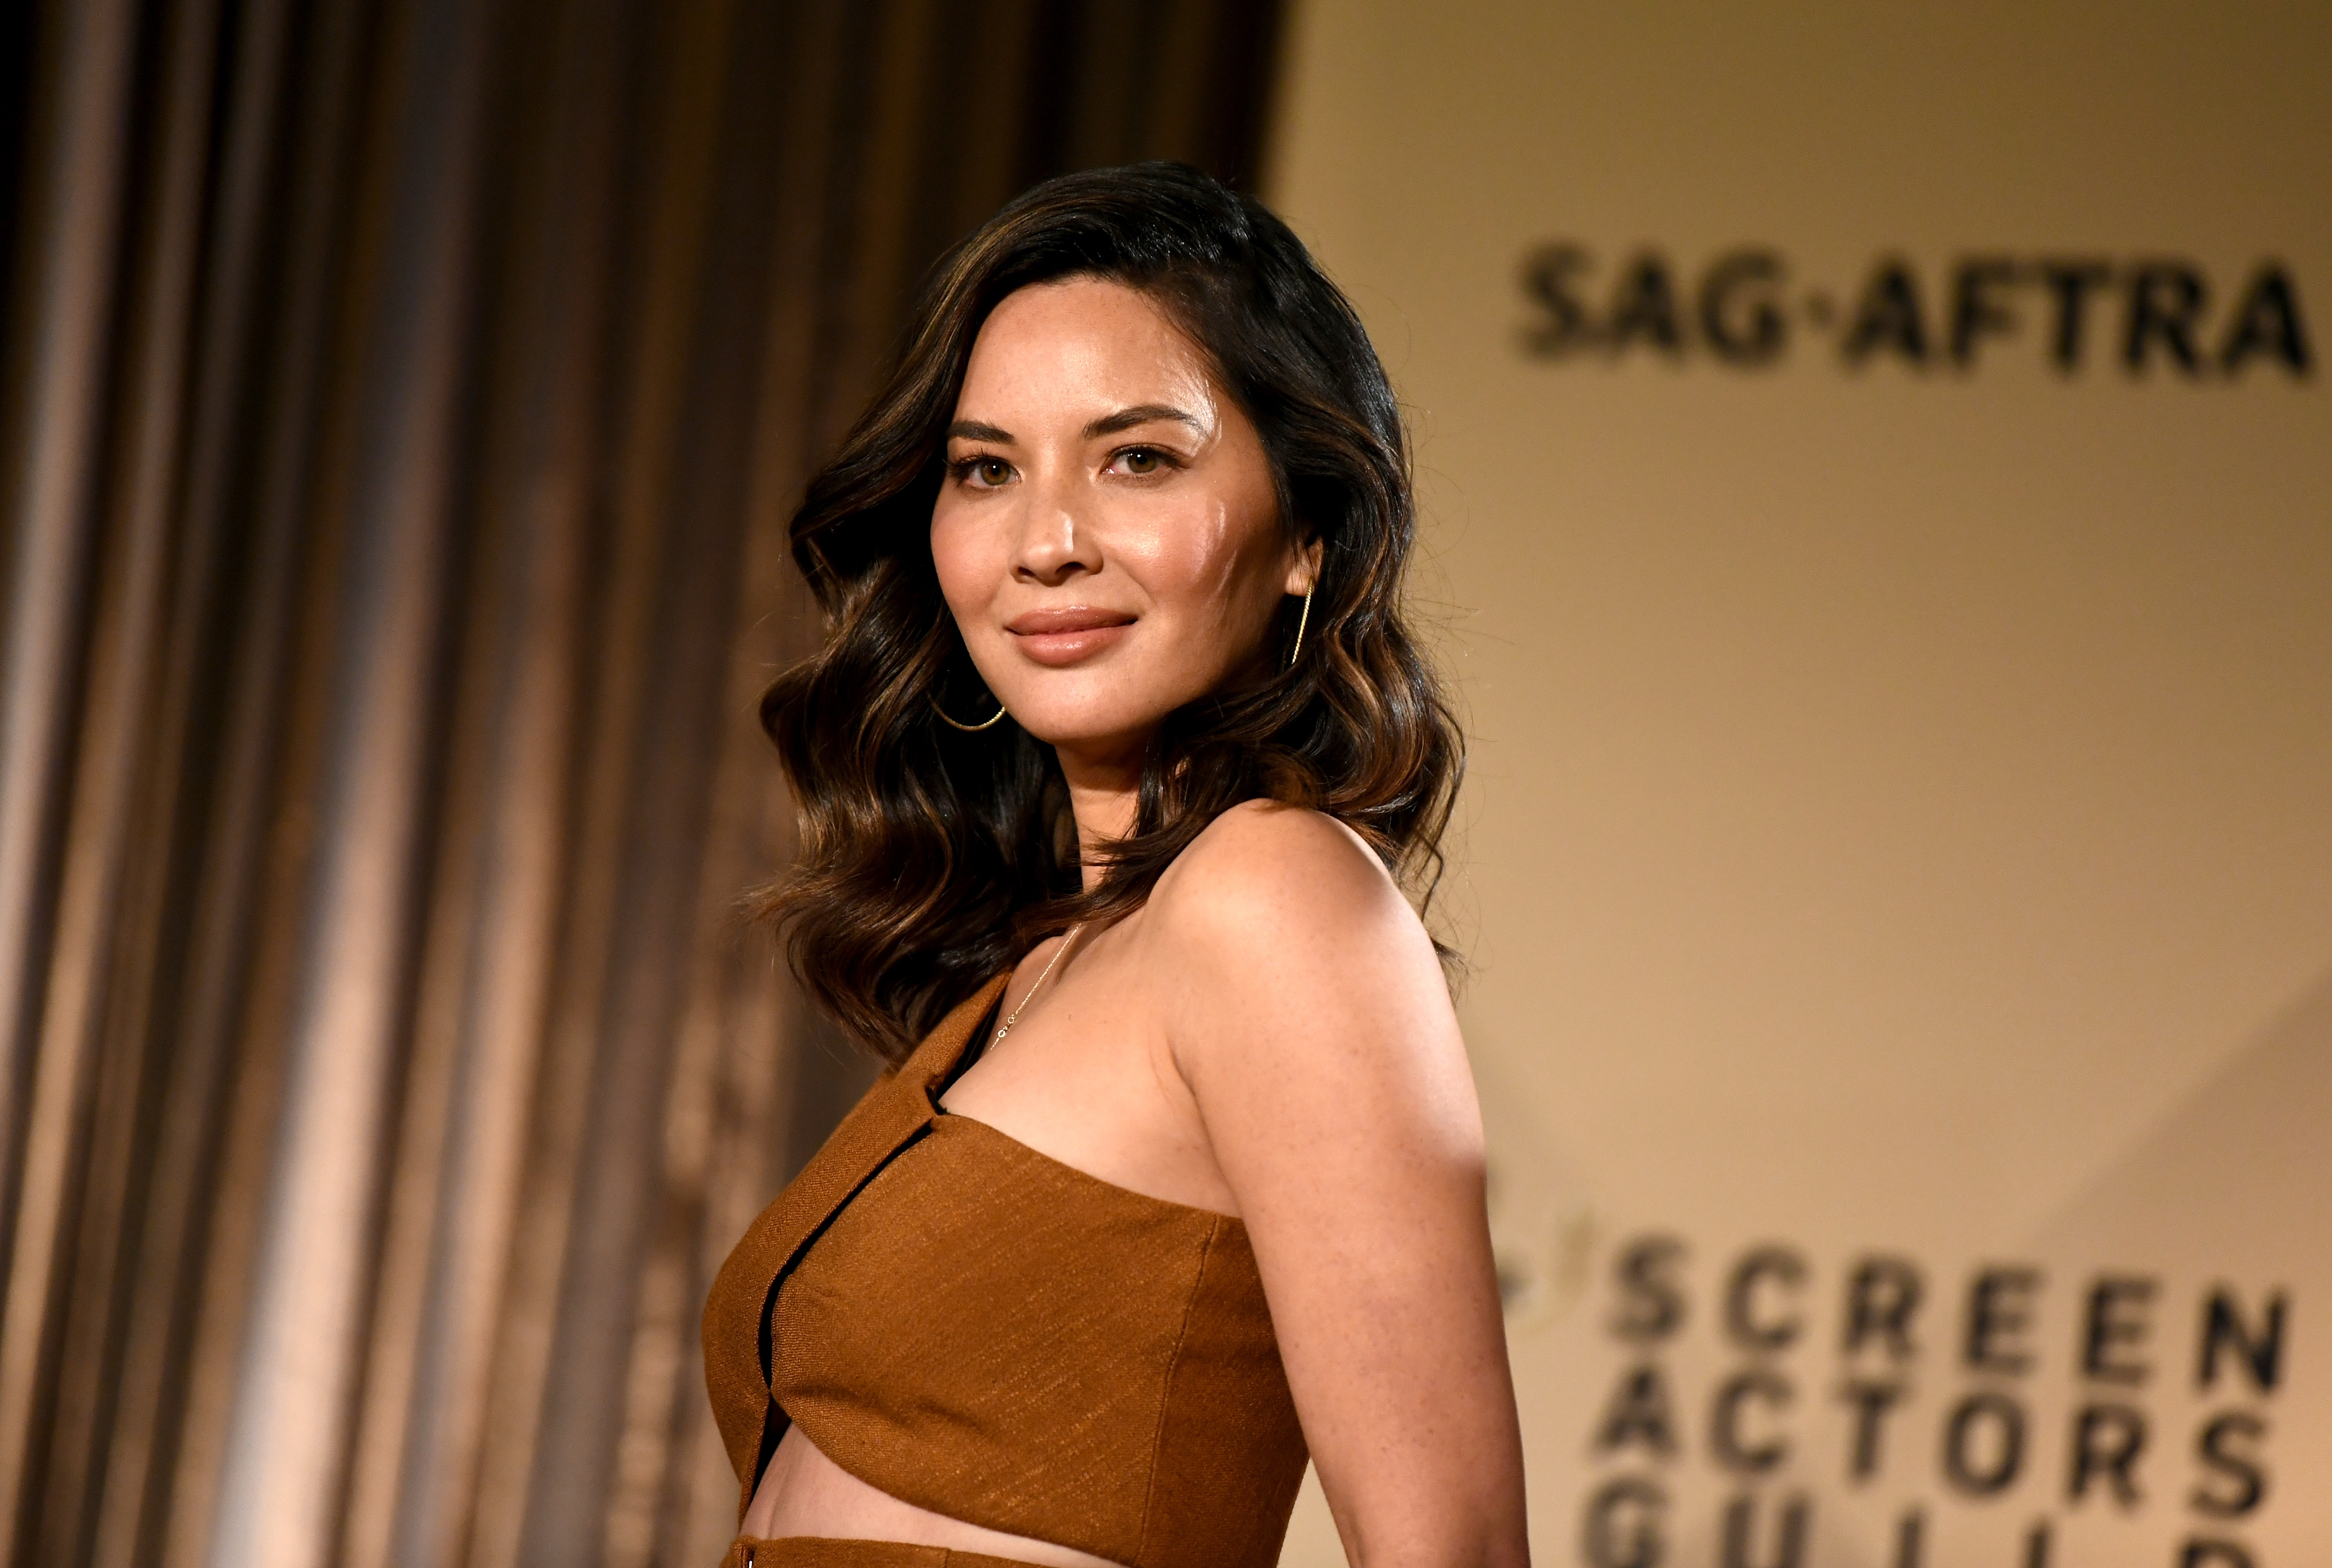 Actor Olivia Munn at the 24th Annual Screen Actors Guild Awards Nominations Announcement at Silver Screen Theater on December 13, 2017 in West Hollywood, California.